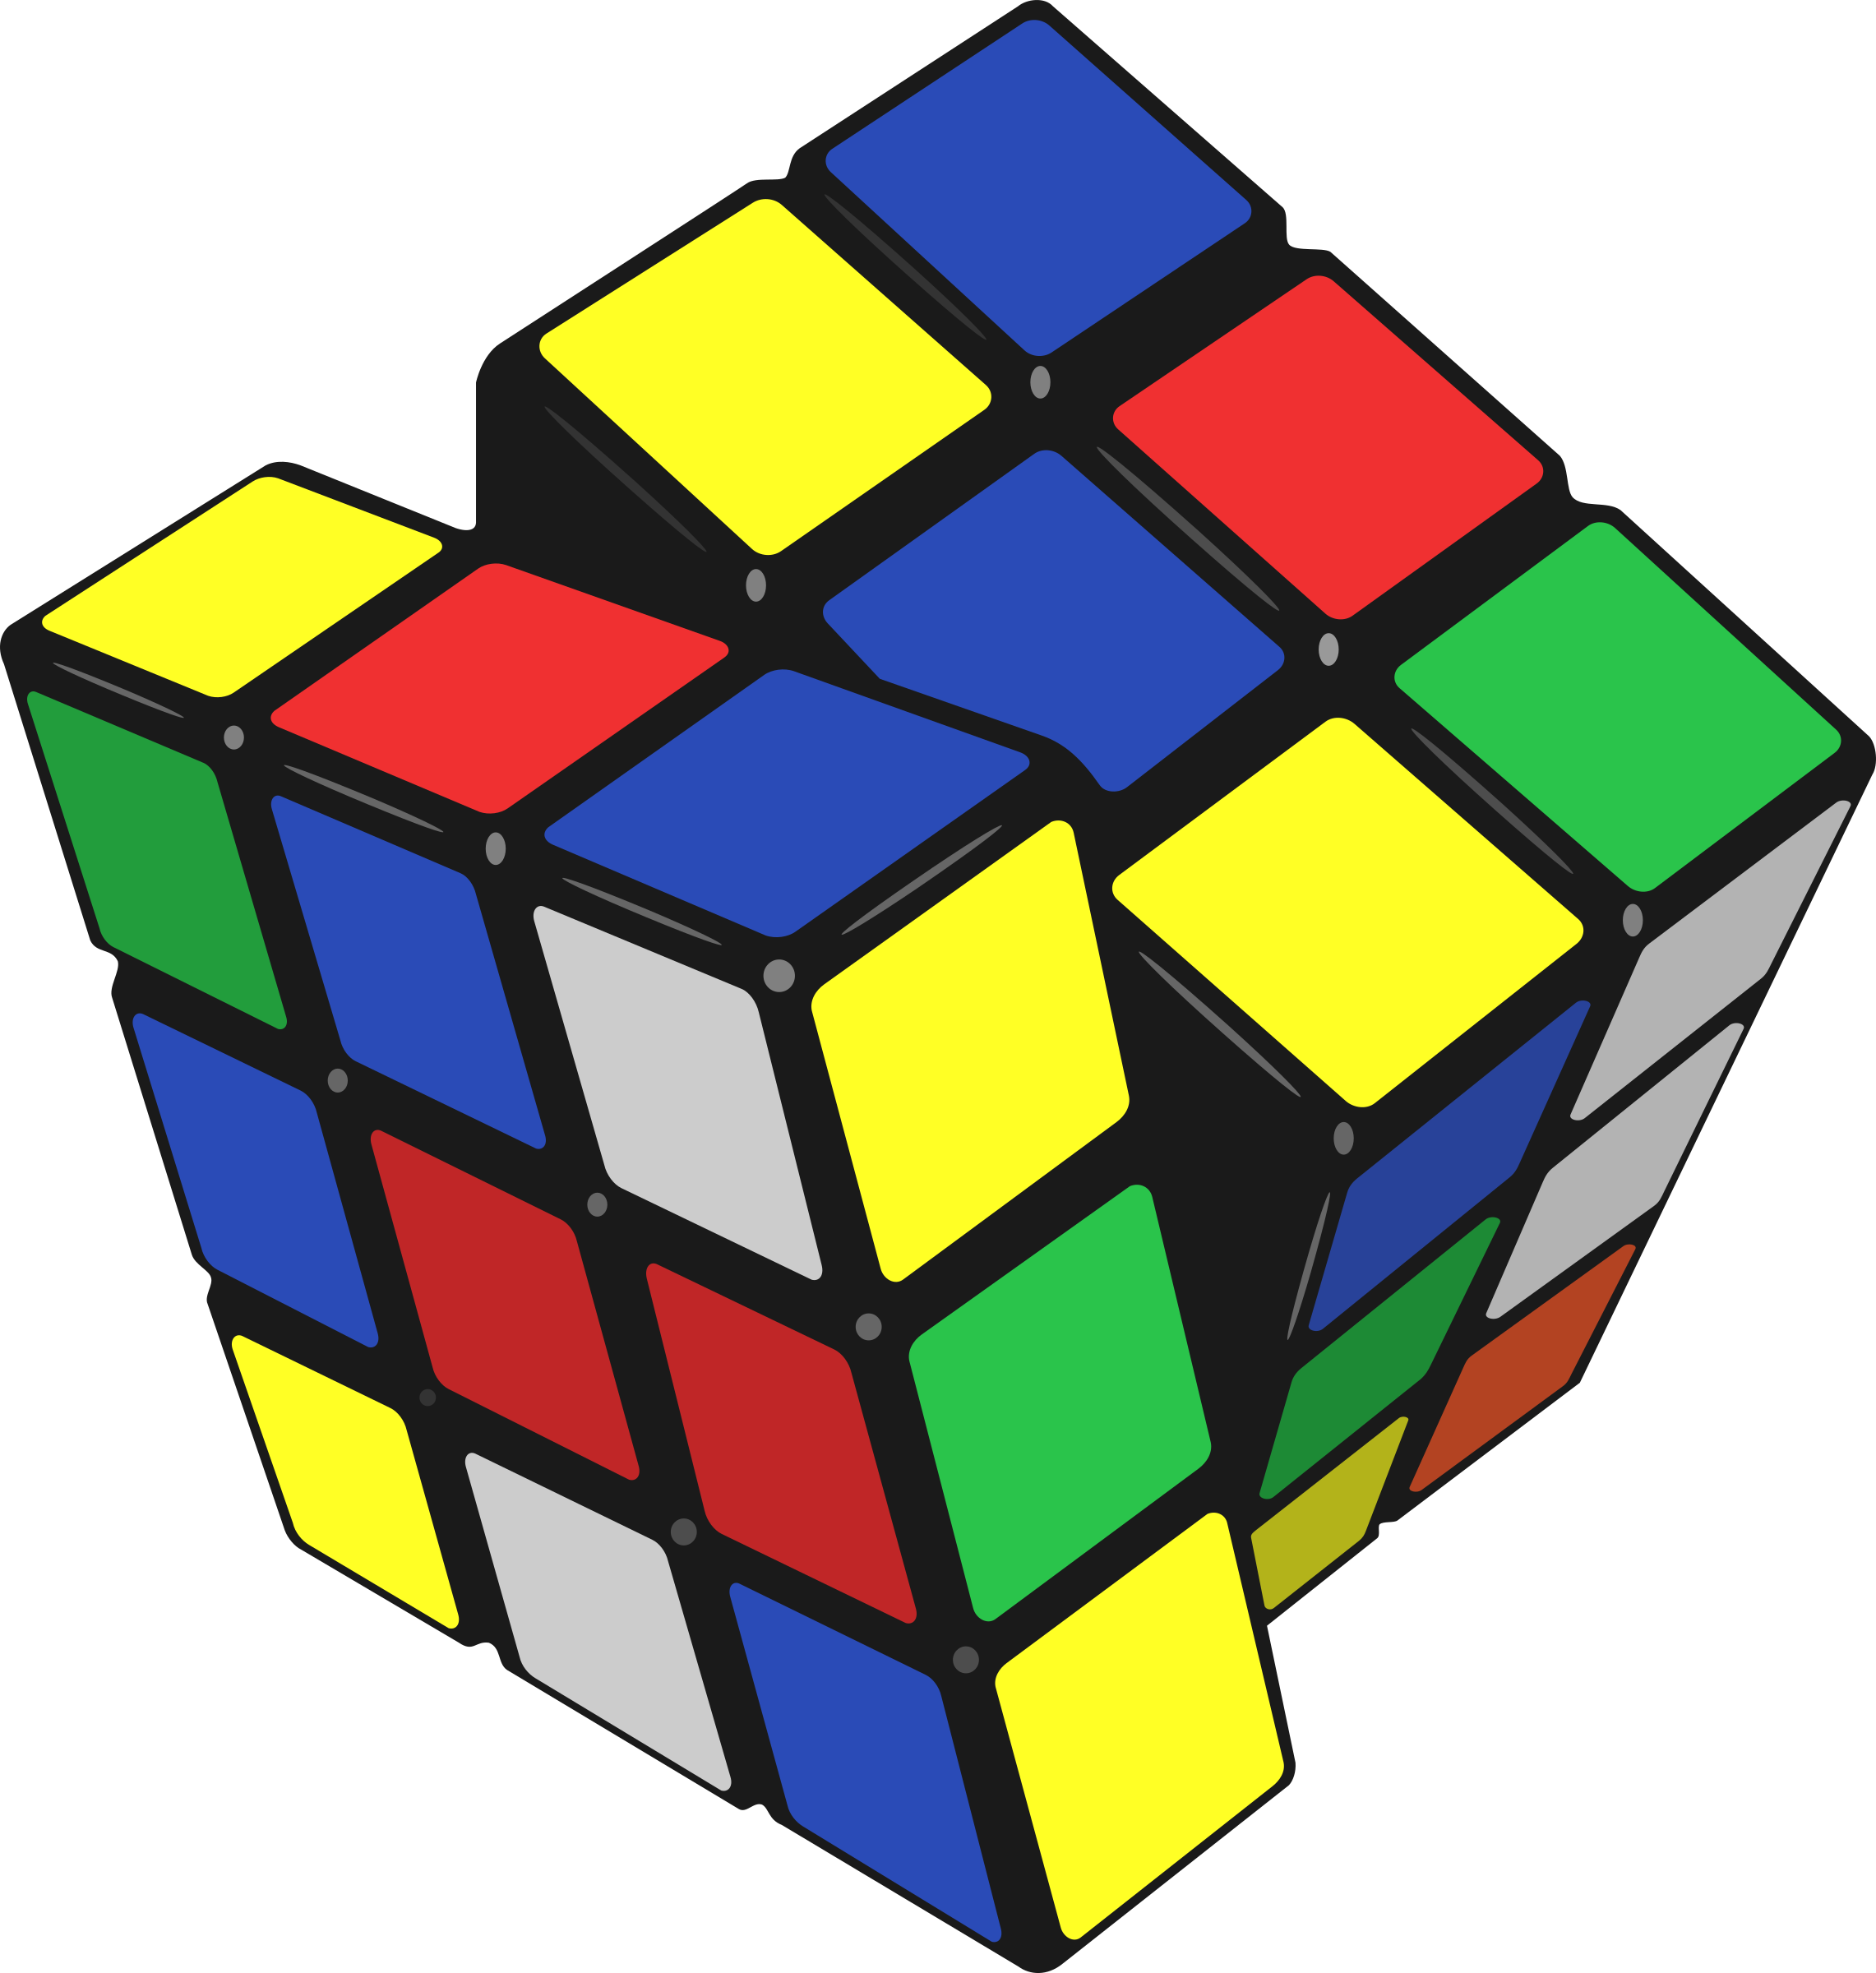 Rubik clipart clip art. Cube of icons png